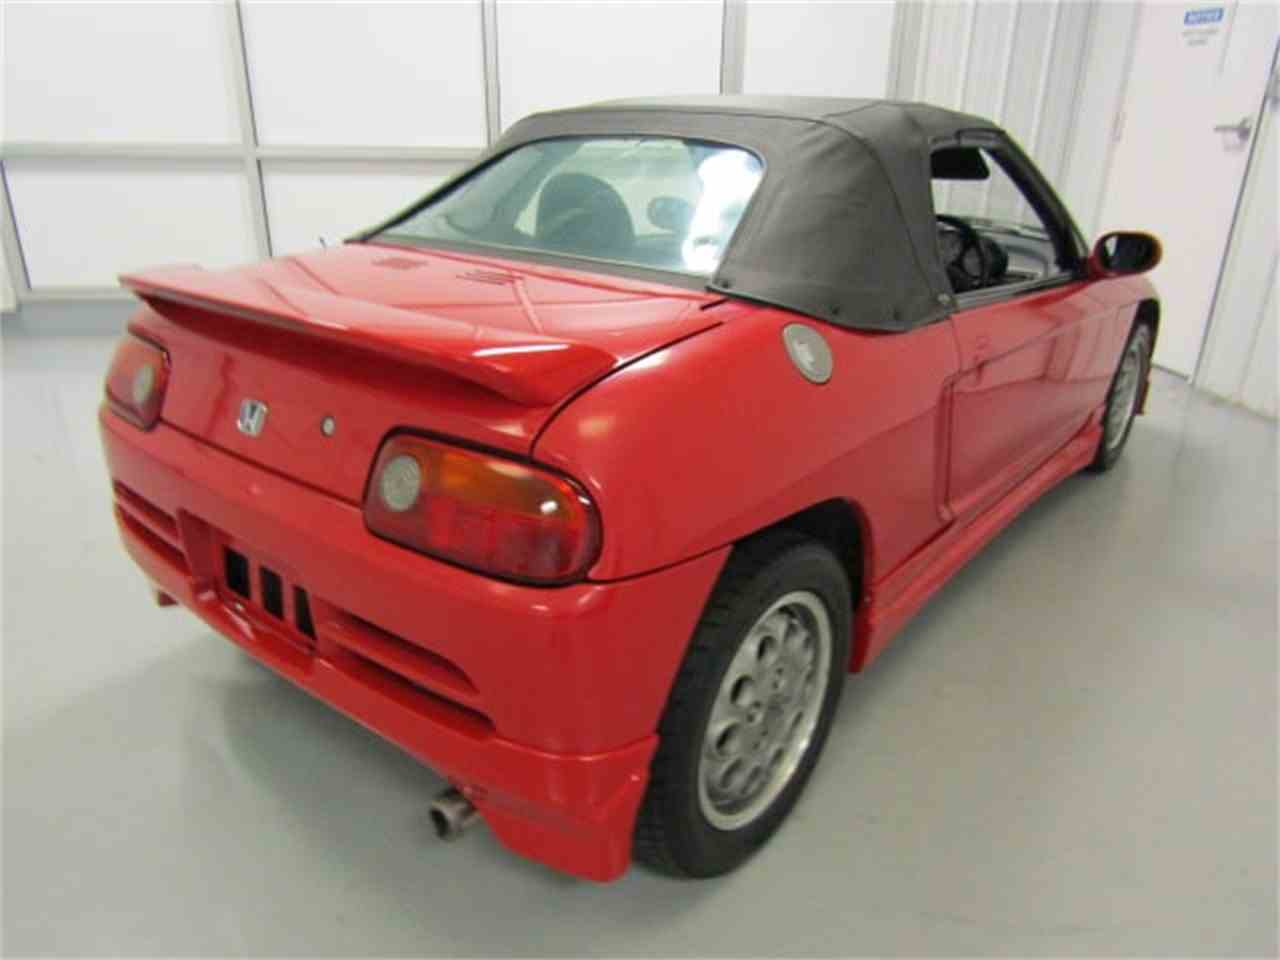 Large Picture of 1991 Beat located in Christiansburg Virginia - $6,999.00 Offered by Duncan Imports & Classic Cars - JL83